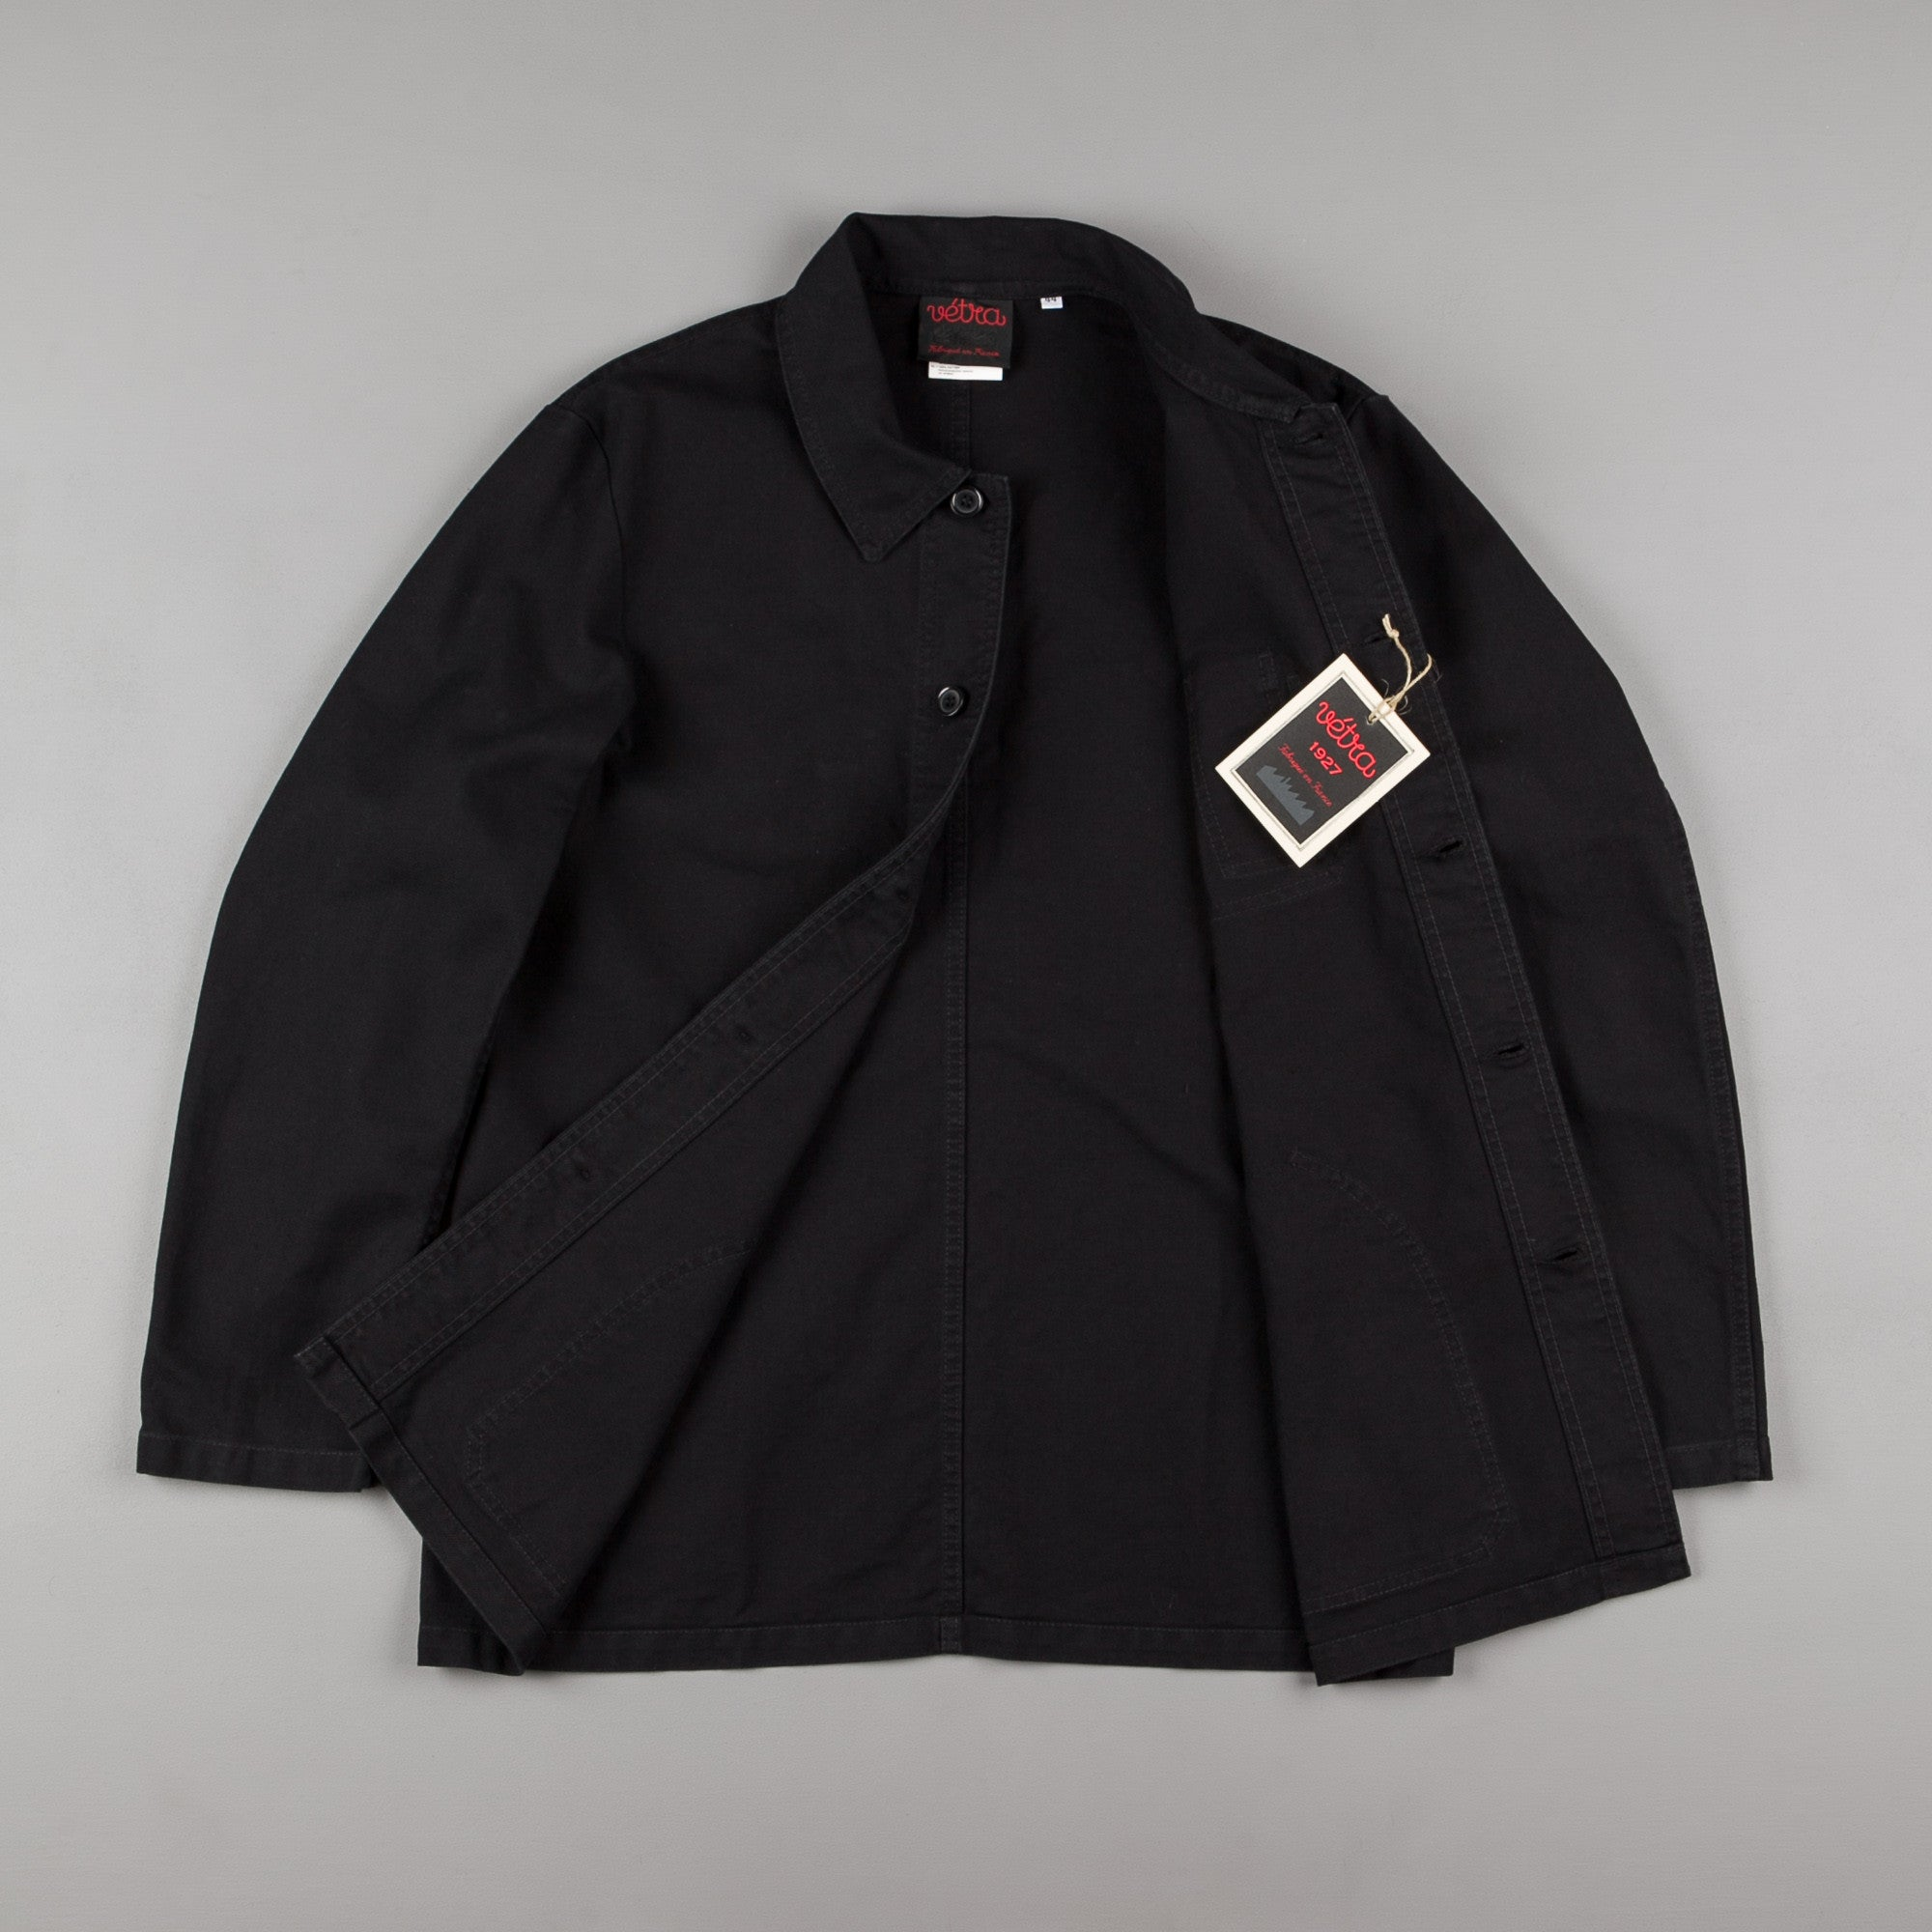 Vetra No.4067 Workwear Jacket - Black